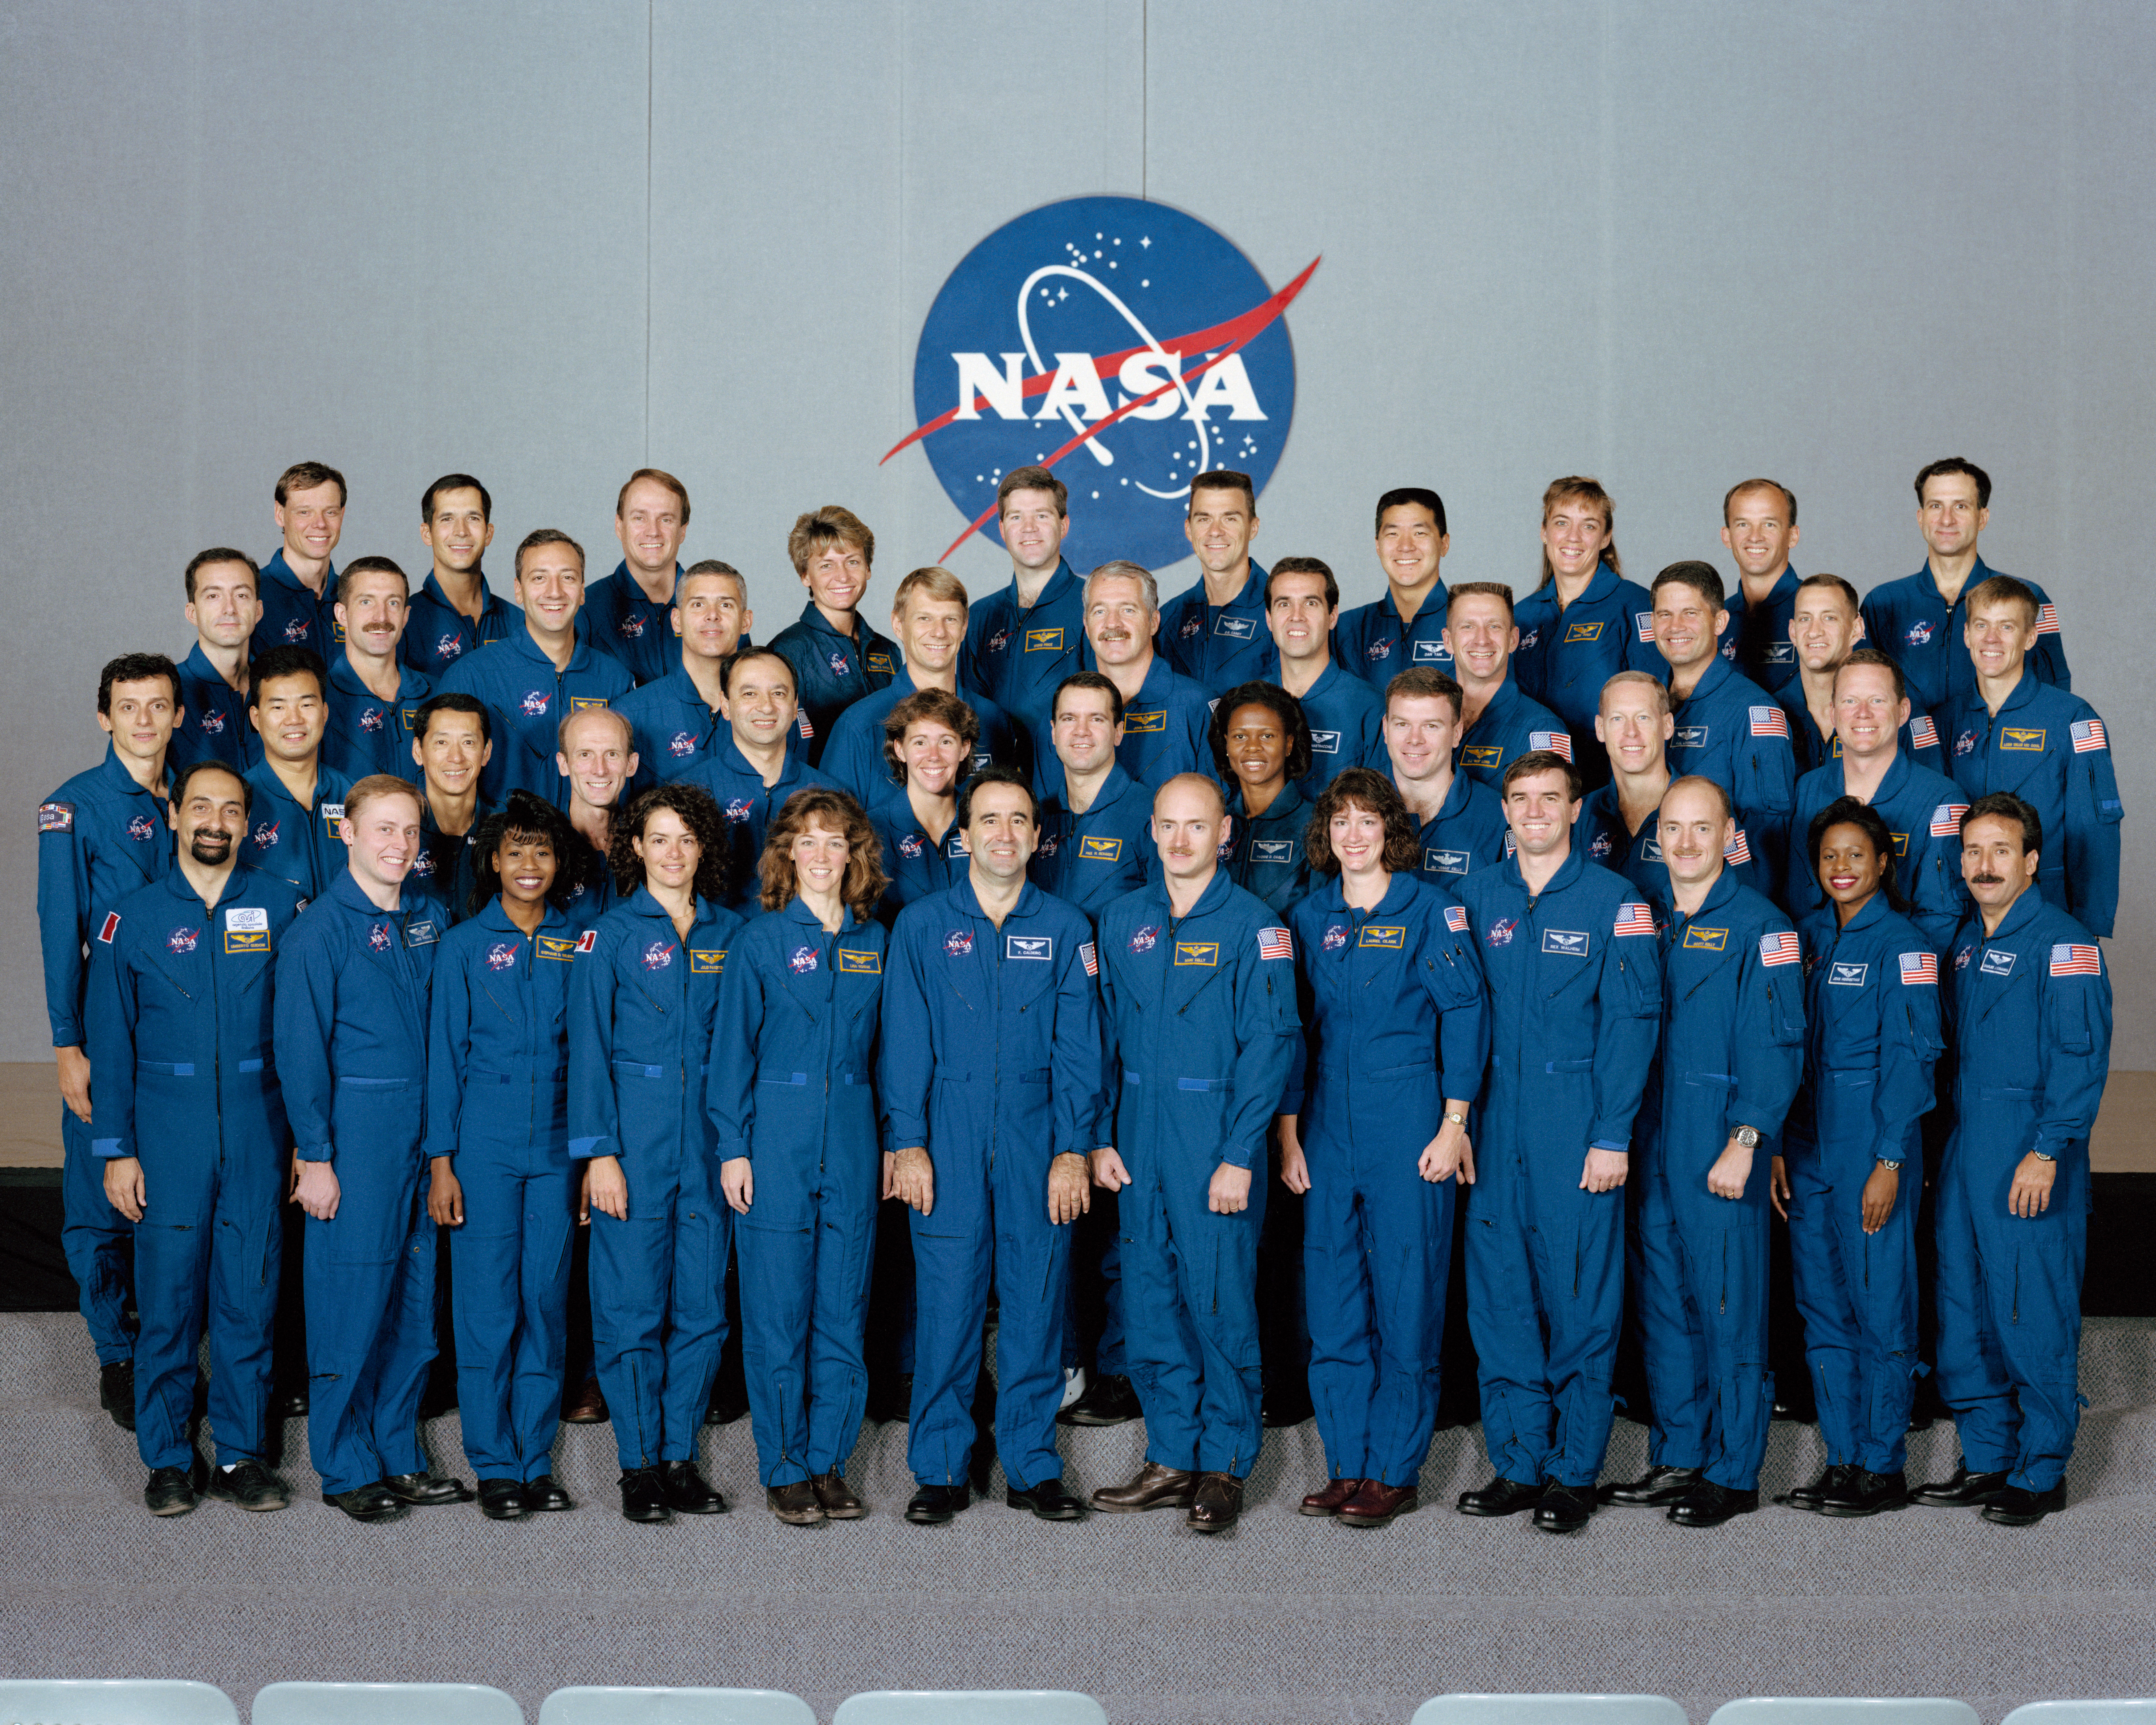 Mike Massimino Radio Extra Class Of Astronauts